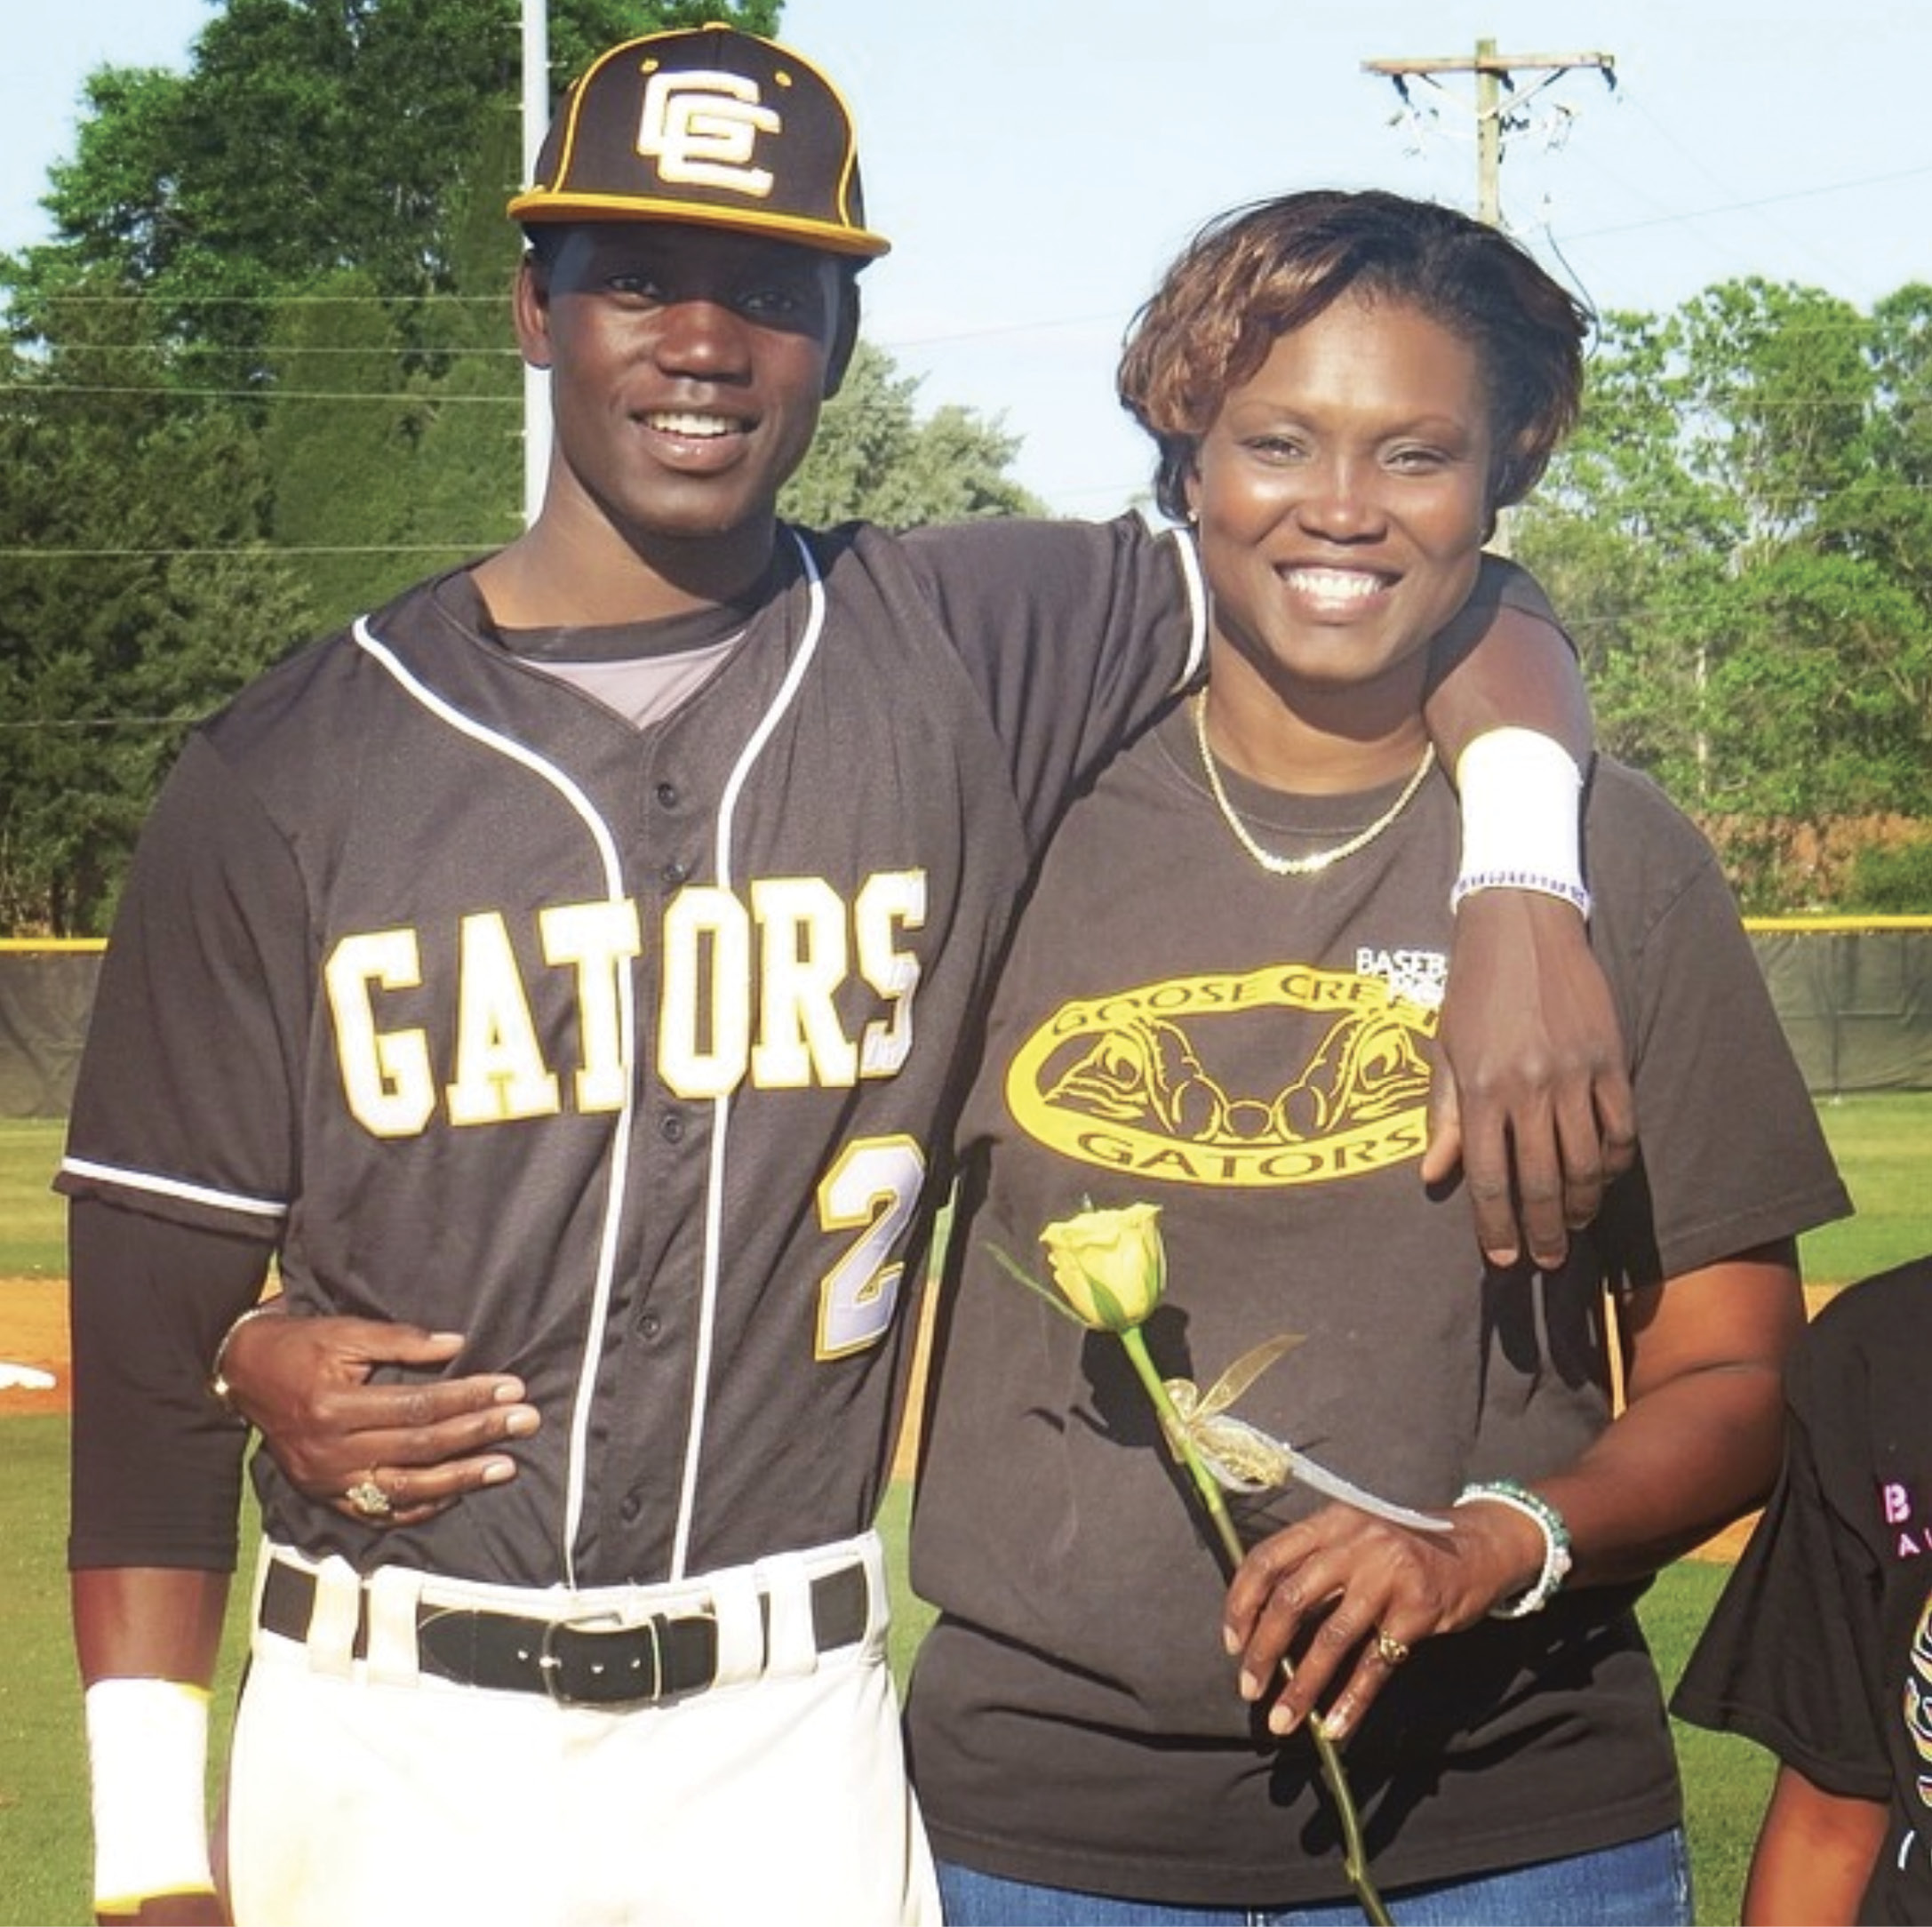 Most Valuable Mom: Chris pictured with his mom in April 2014 at Senior Night for Goose Creek High School, where he was a standout player before playing for Charleston Southern University. #MyMomIsTheRealMVP was a favorite hashtag for many of his social media posts prior to his mom's death